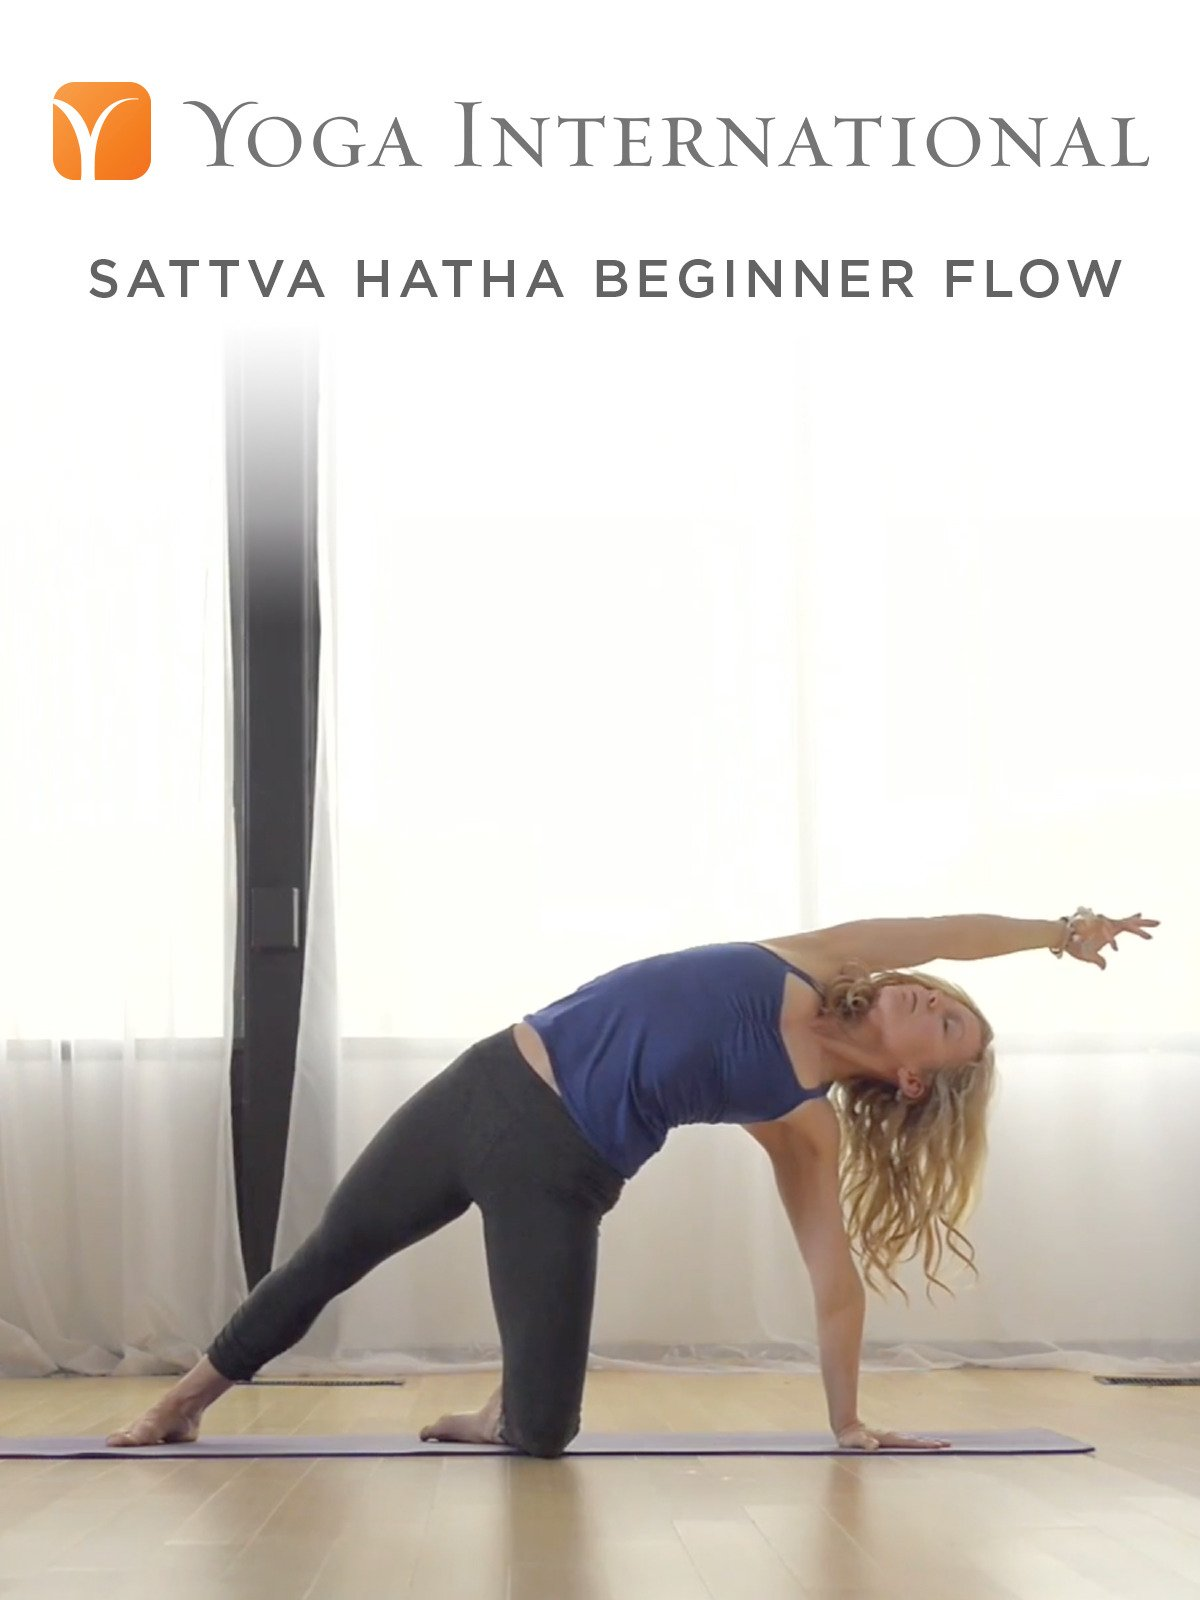 Sattva Hatha Beginner Flow